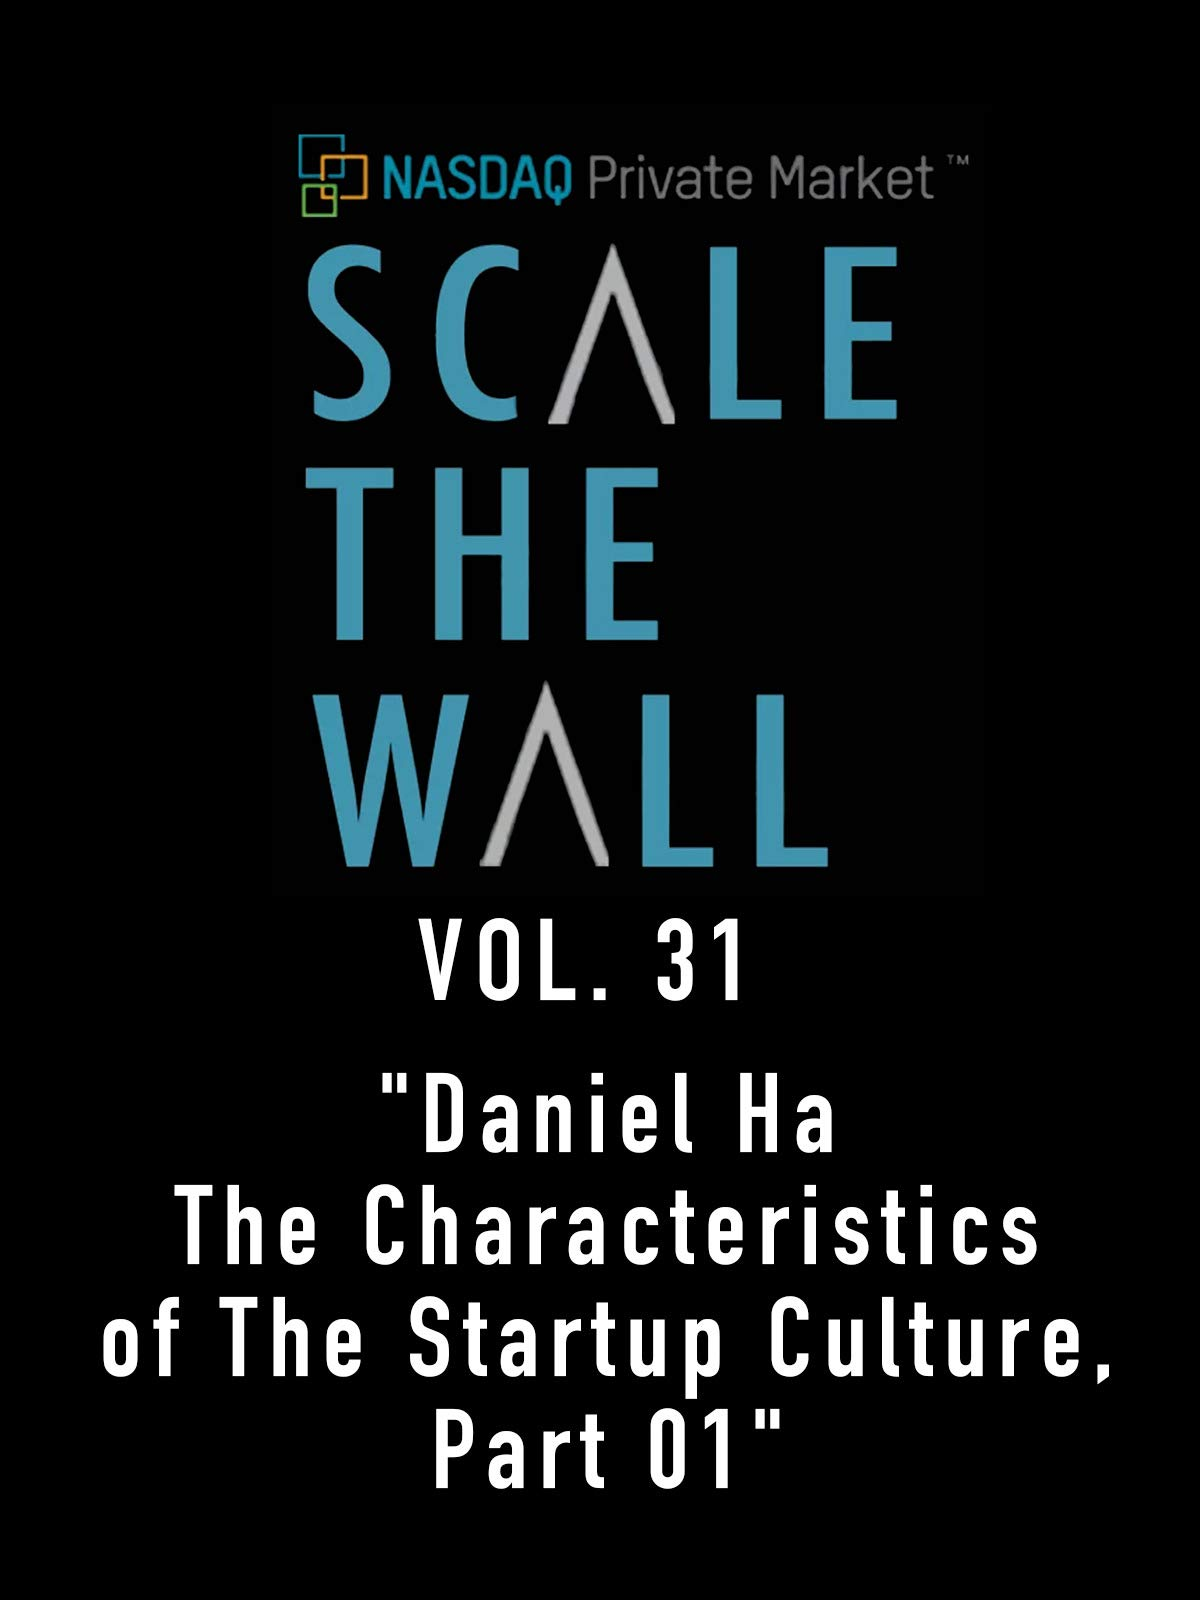 Scale the Wall Vol. 31